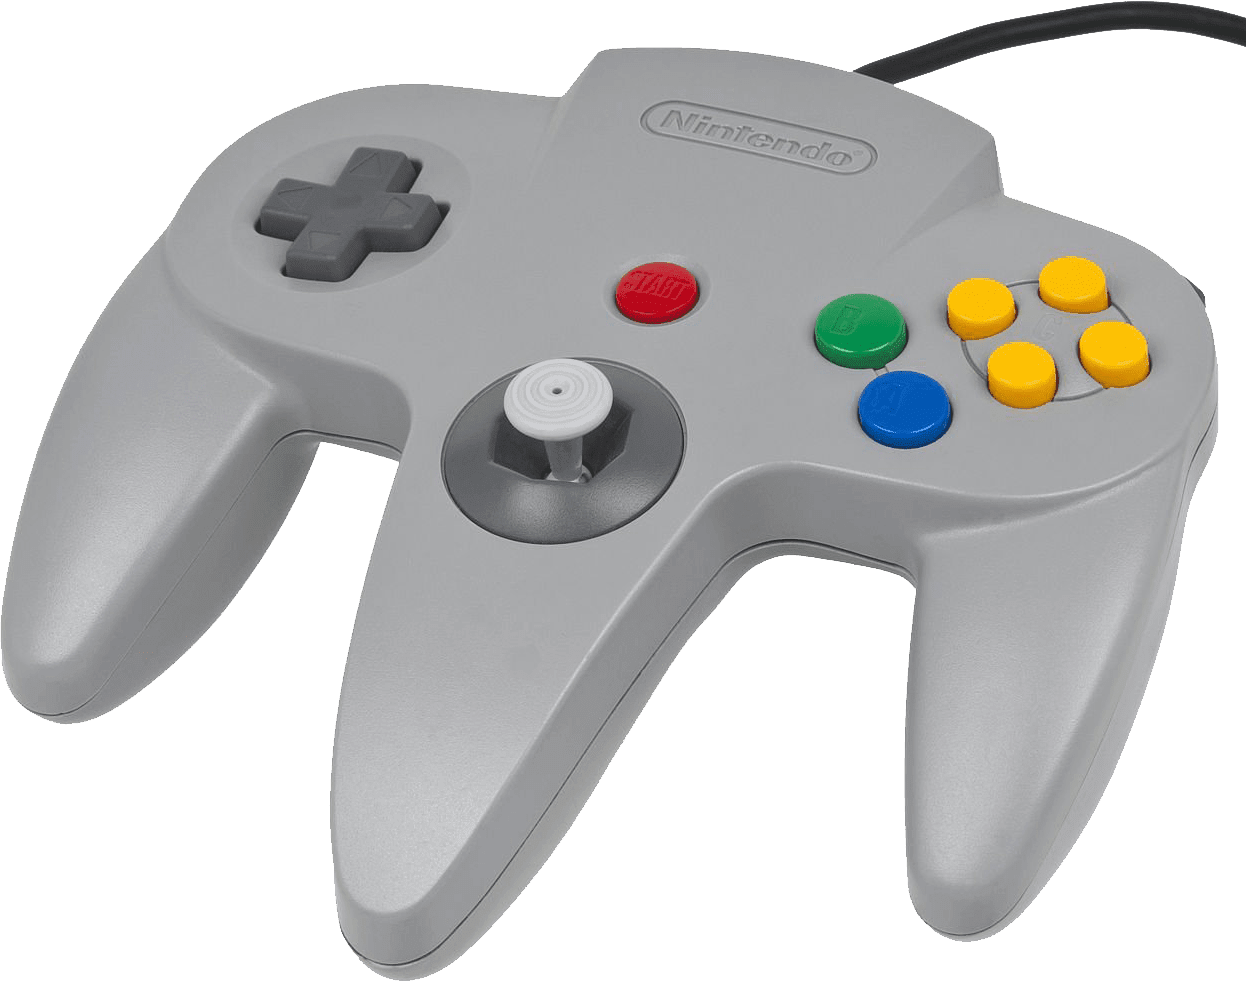 n64 controller png